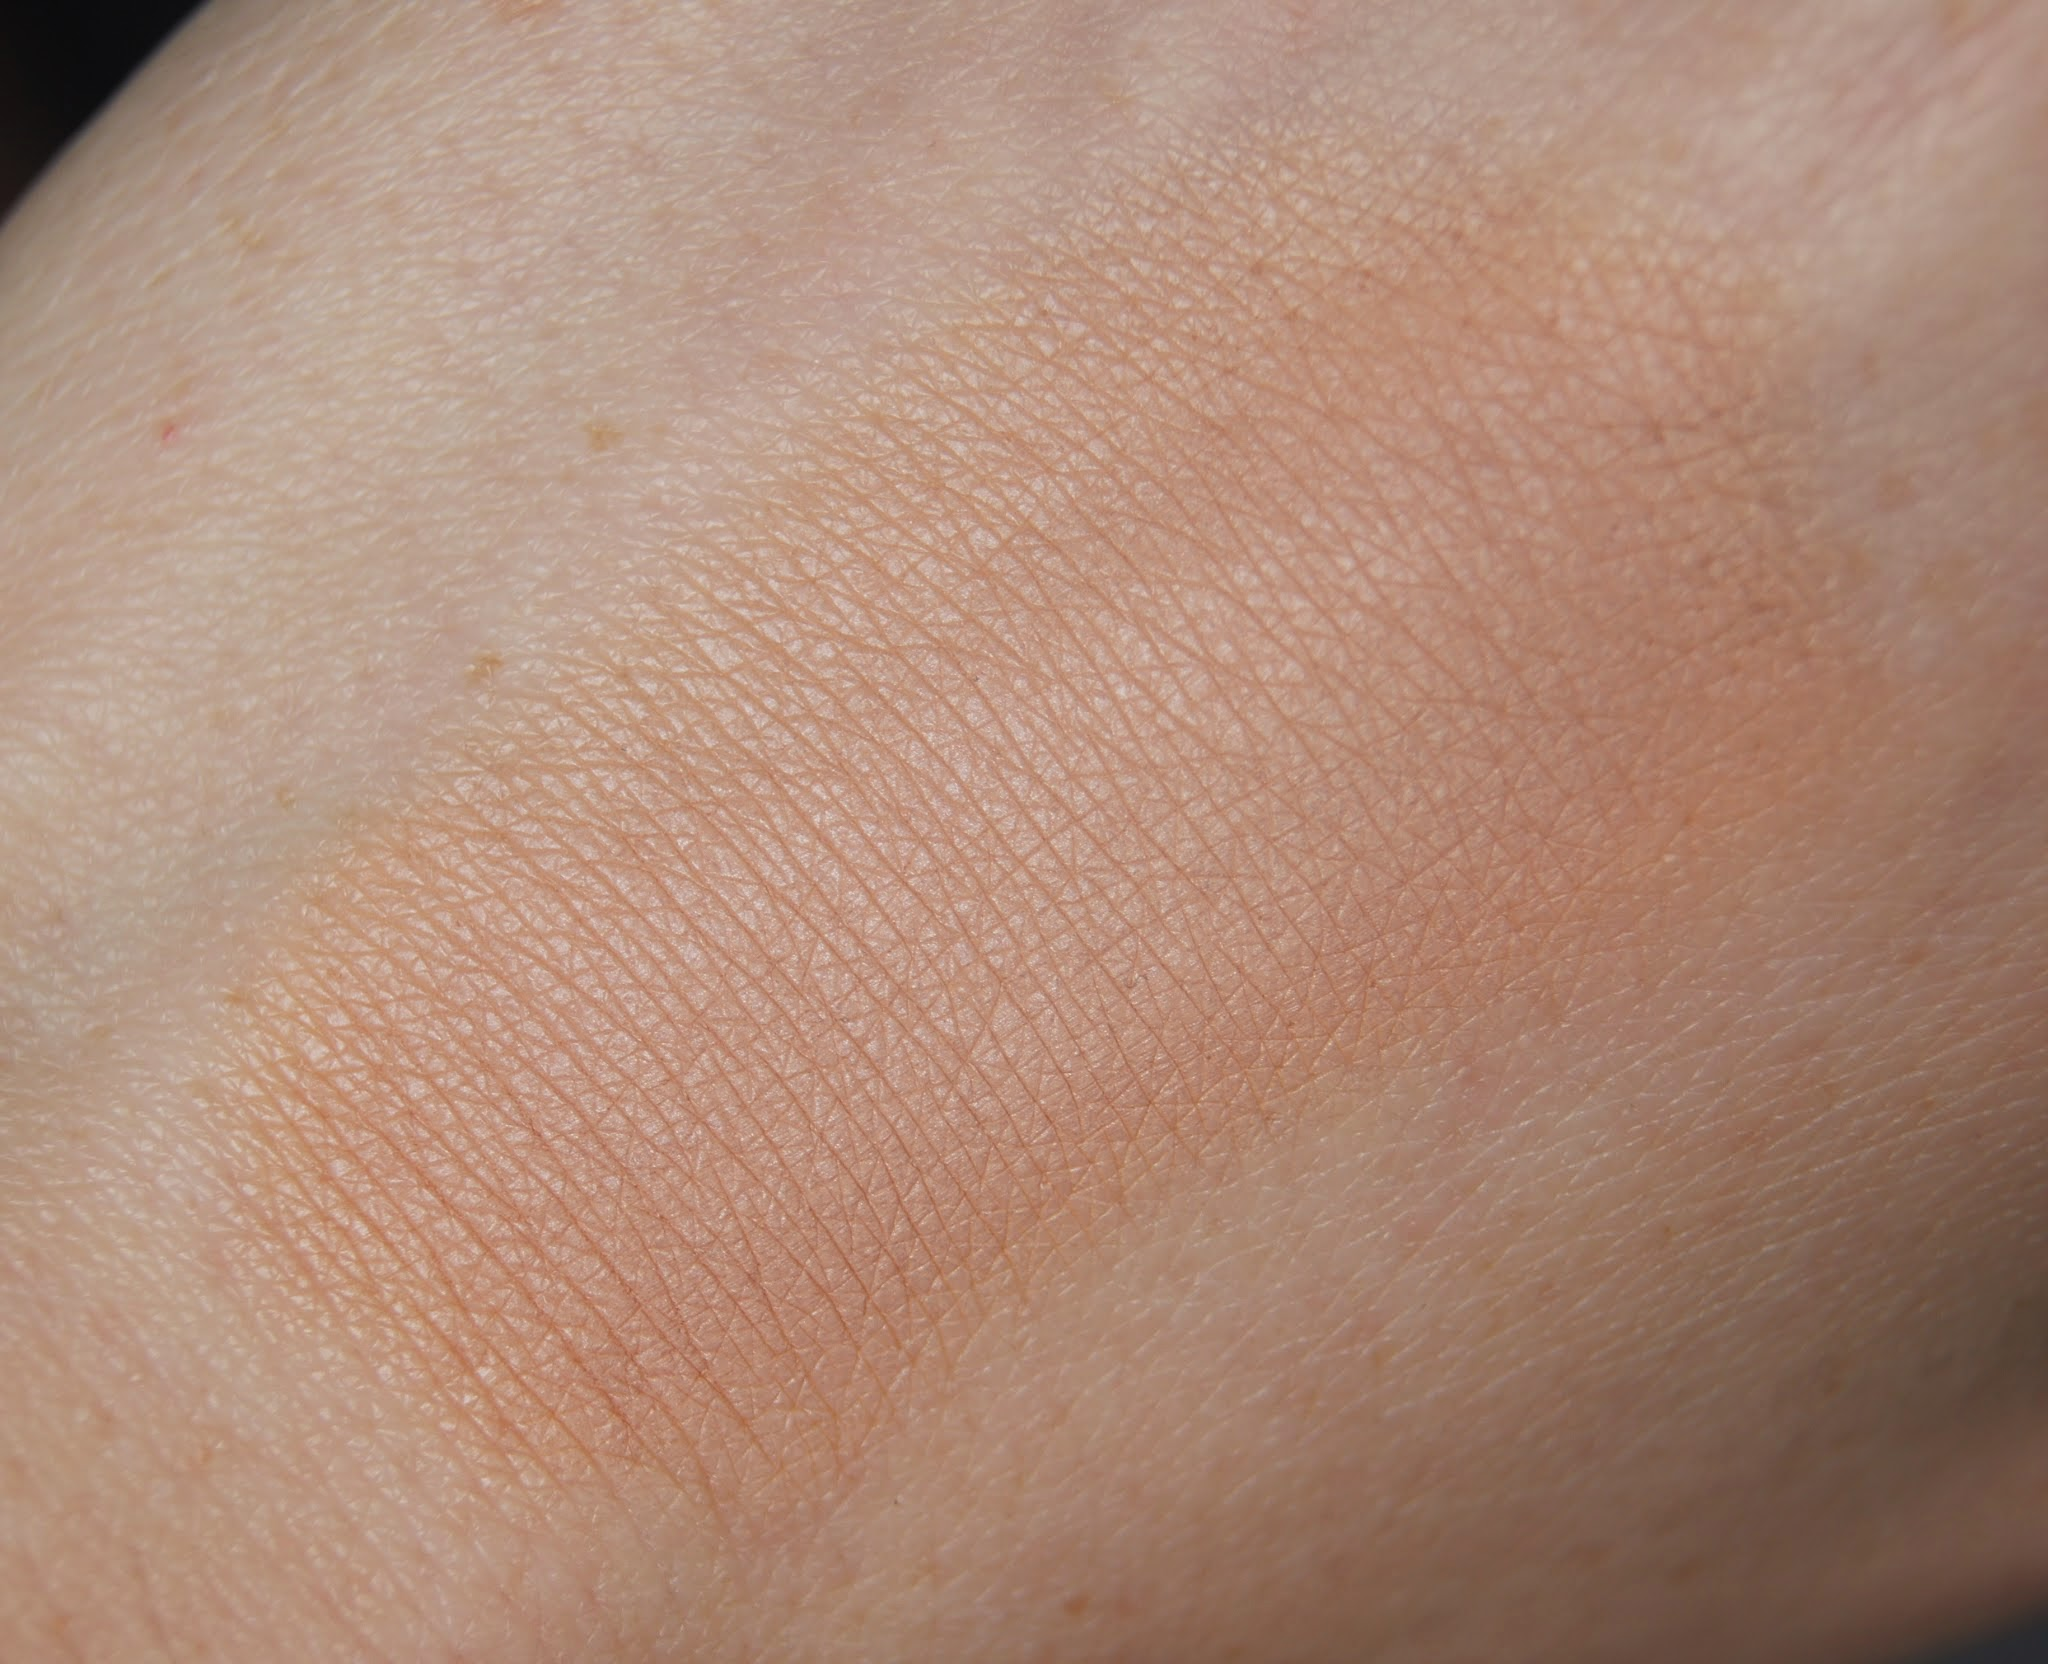 benefit boi-ing industrial strength concealer shade 02 swatch review